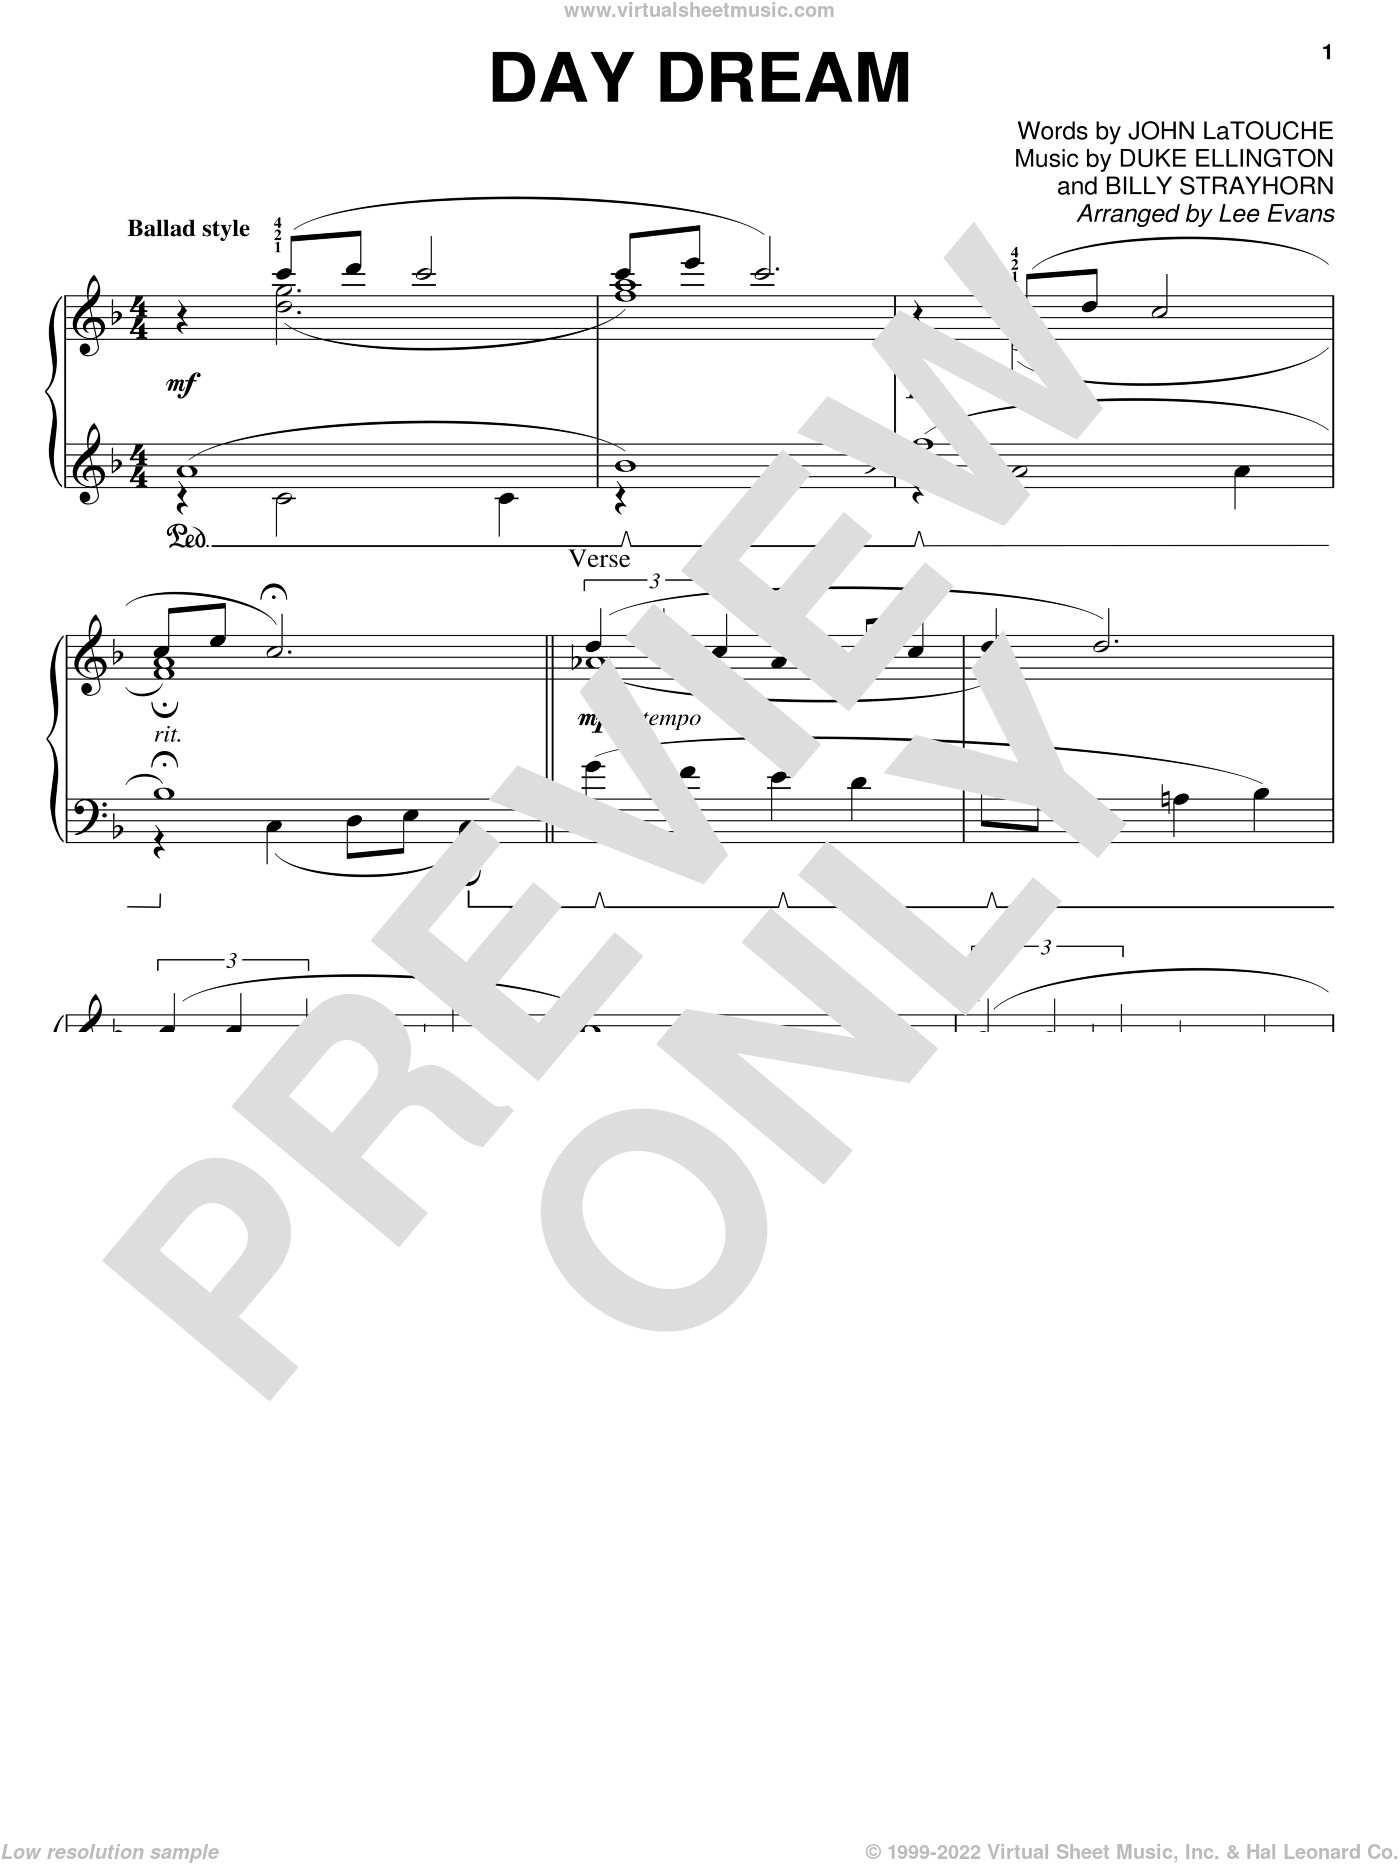 Day Dream sheet music for piano solo by John Latouche, Lee Evans, Billy Strayhorn and Duke Ellington. Score Image Preview.